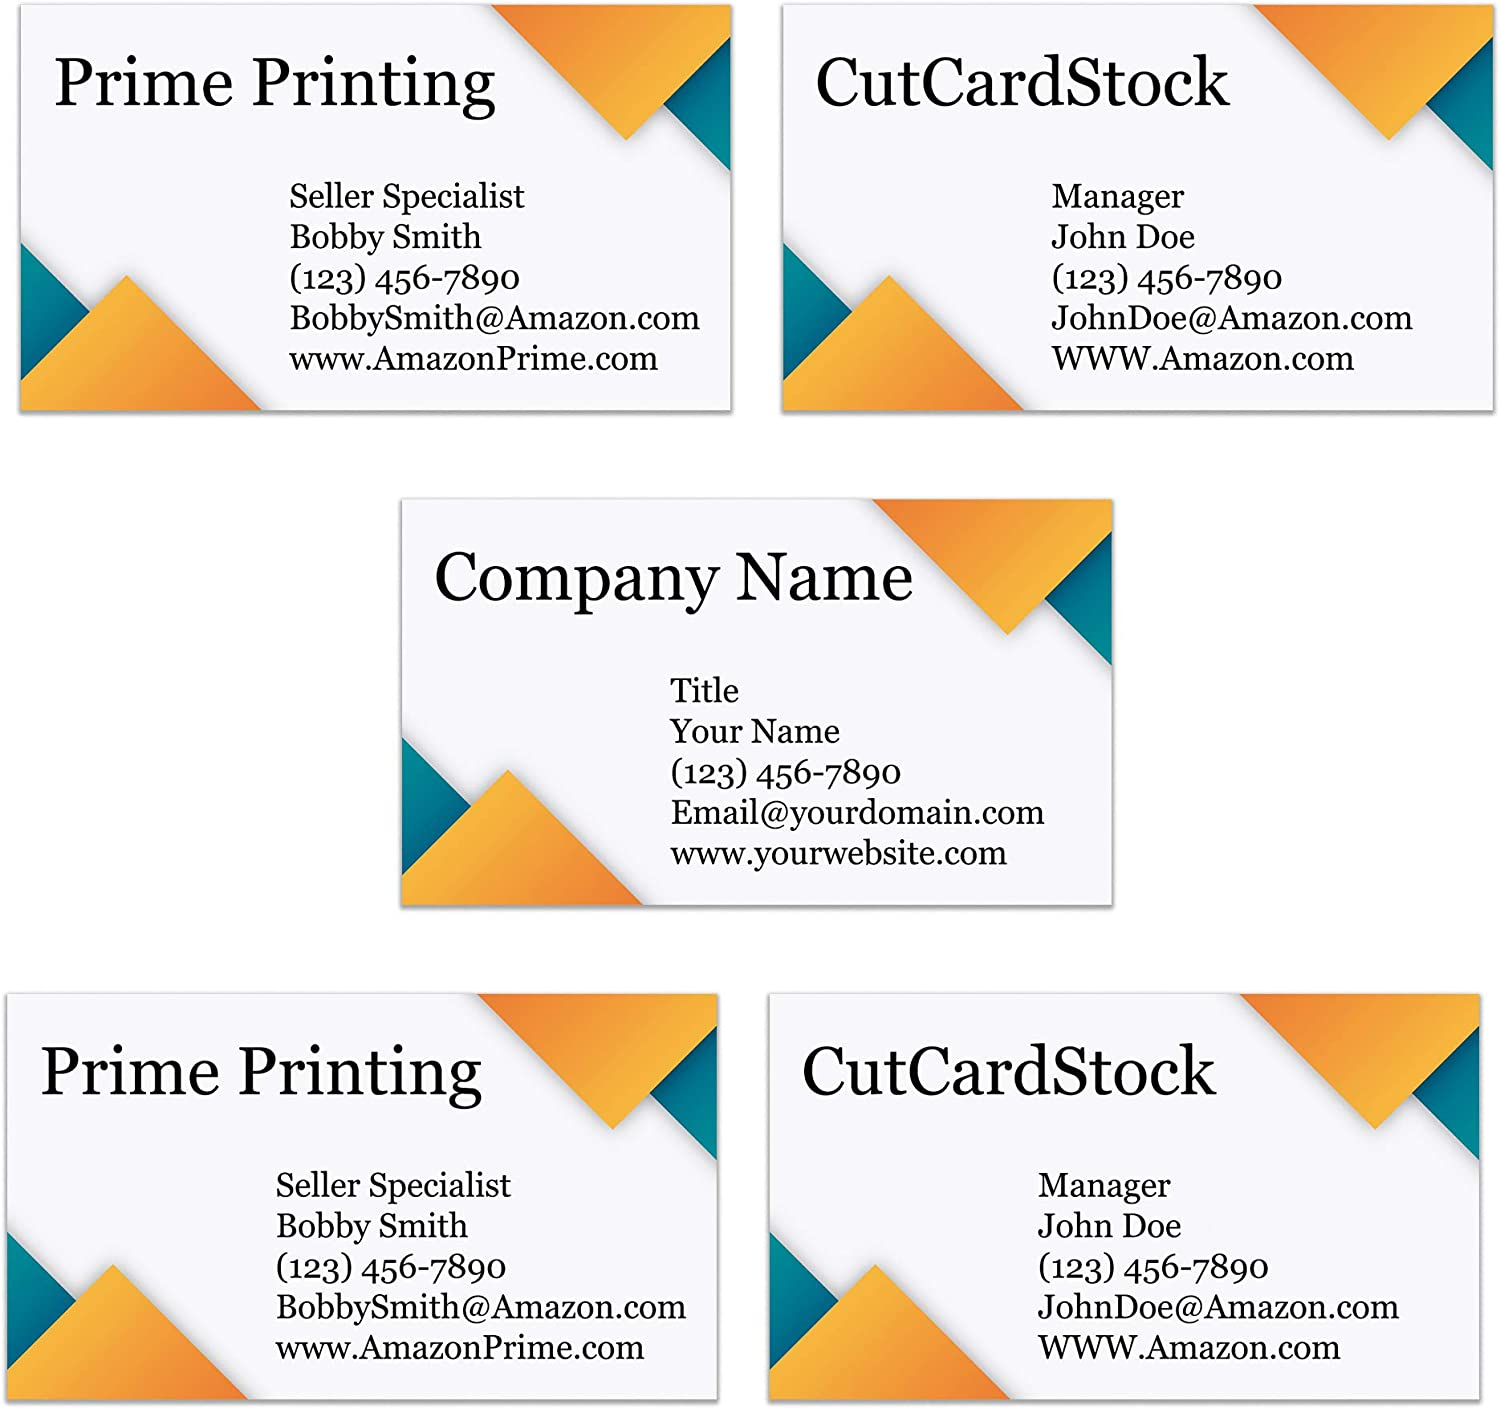 Ocean Blue, 100 Thick Sturdy Stock 300GSM Custom Printed Business Cards 3.5 x 2-100/% Made in the U.S.A.